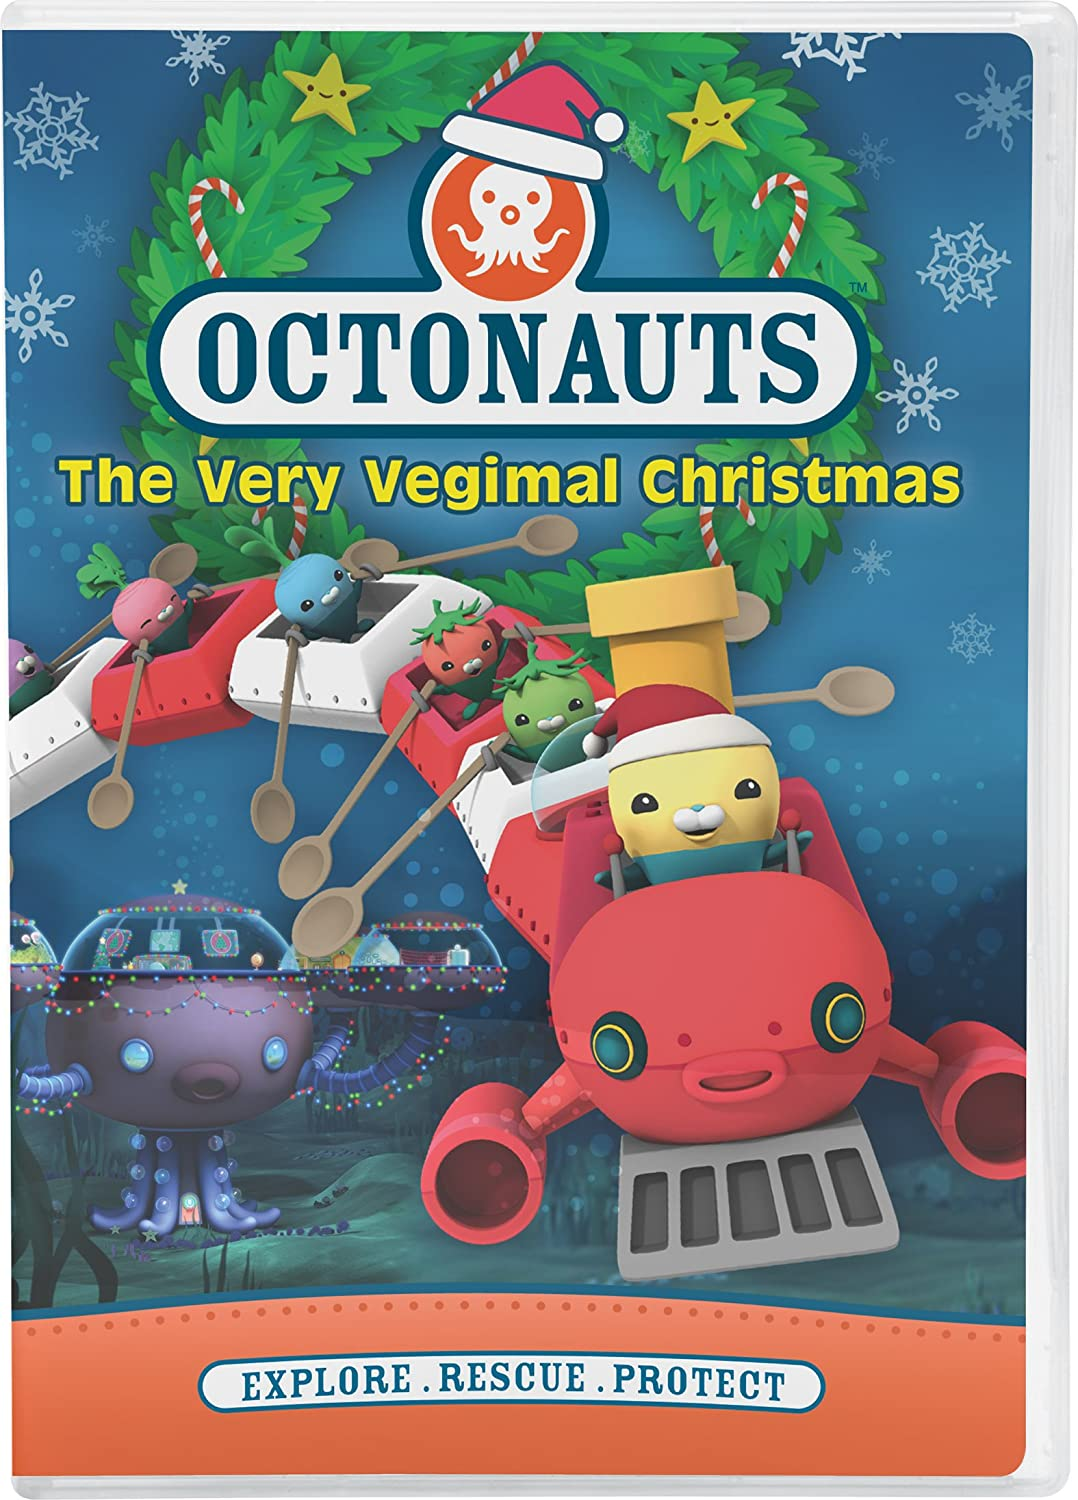 Amazon.com: Octonauts: Very Vegimal Christmas: The Octonauts ...